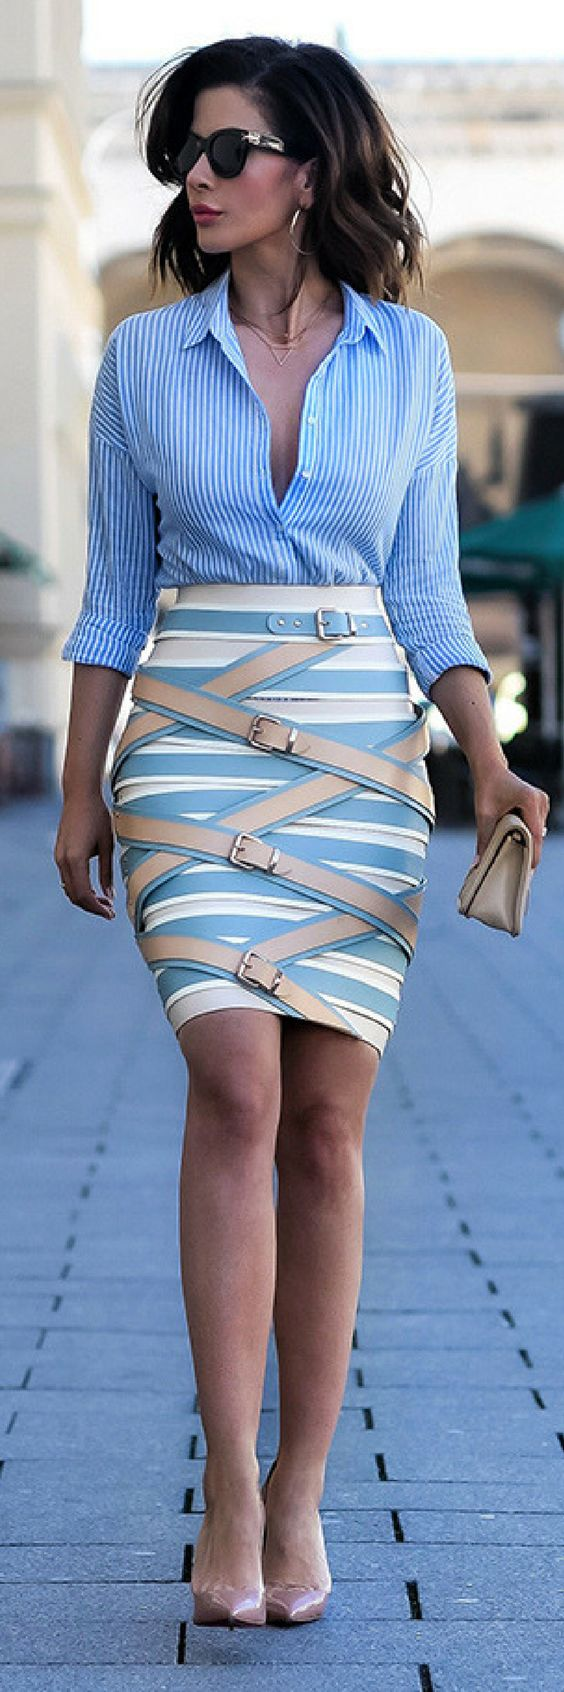 abiti estivi STRAP-SKIRT // Summer Outfit Idea By Short Stories and Skirts